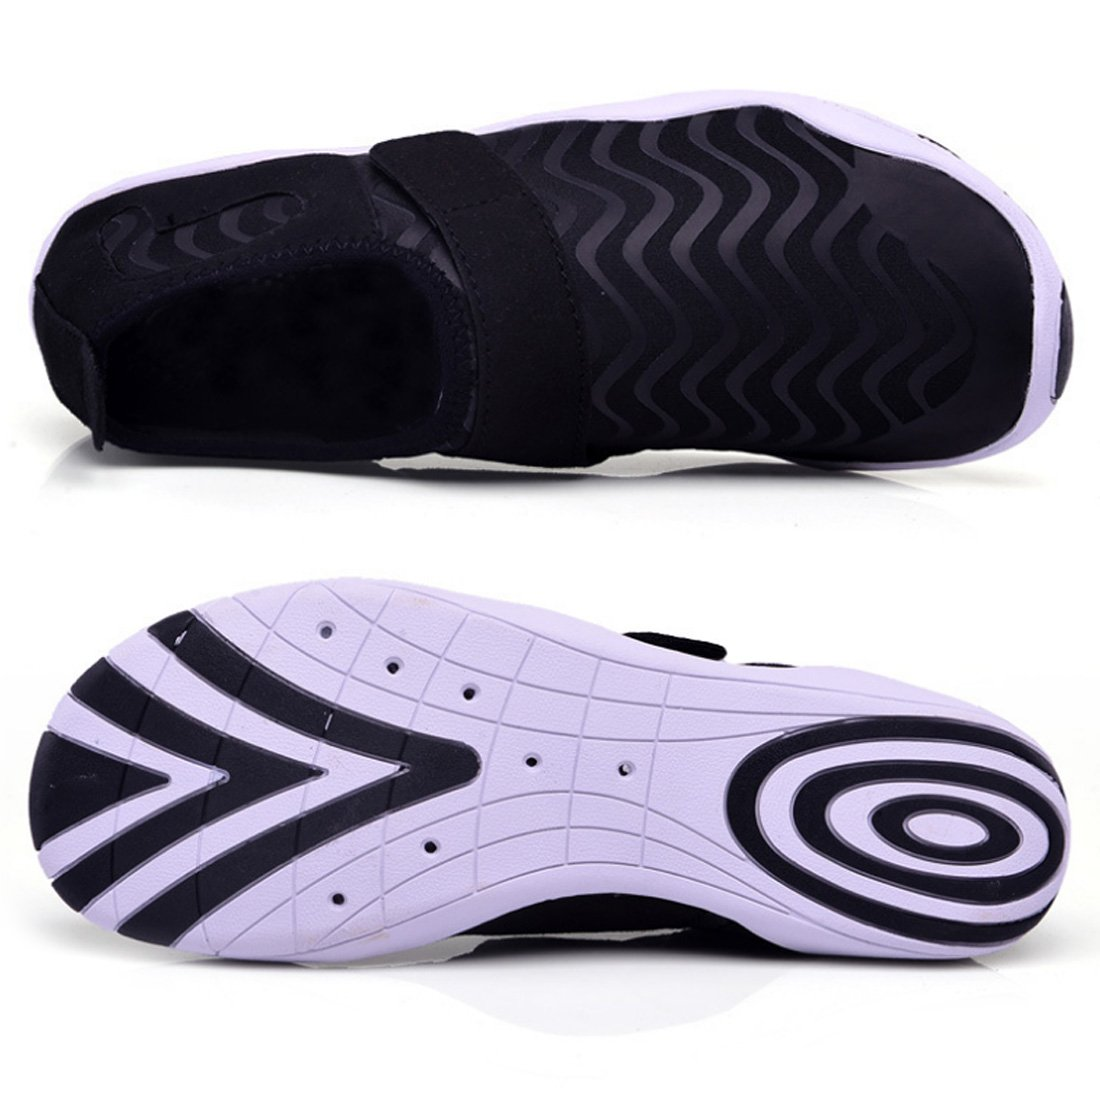 Water Shoes Quick Dry Aqua Shoes Barefoot Shoes for Water Sports Rubber Sole B07DMH65YF EU Size 37(US Size Women 6)|Black